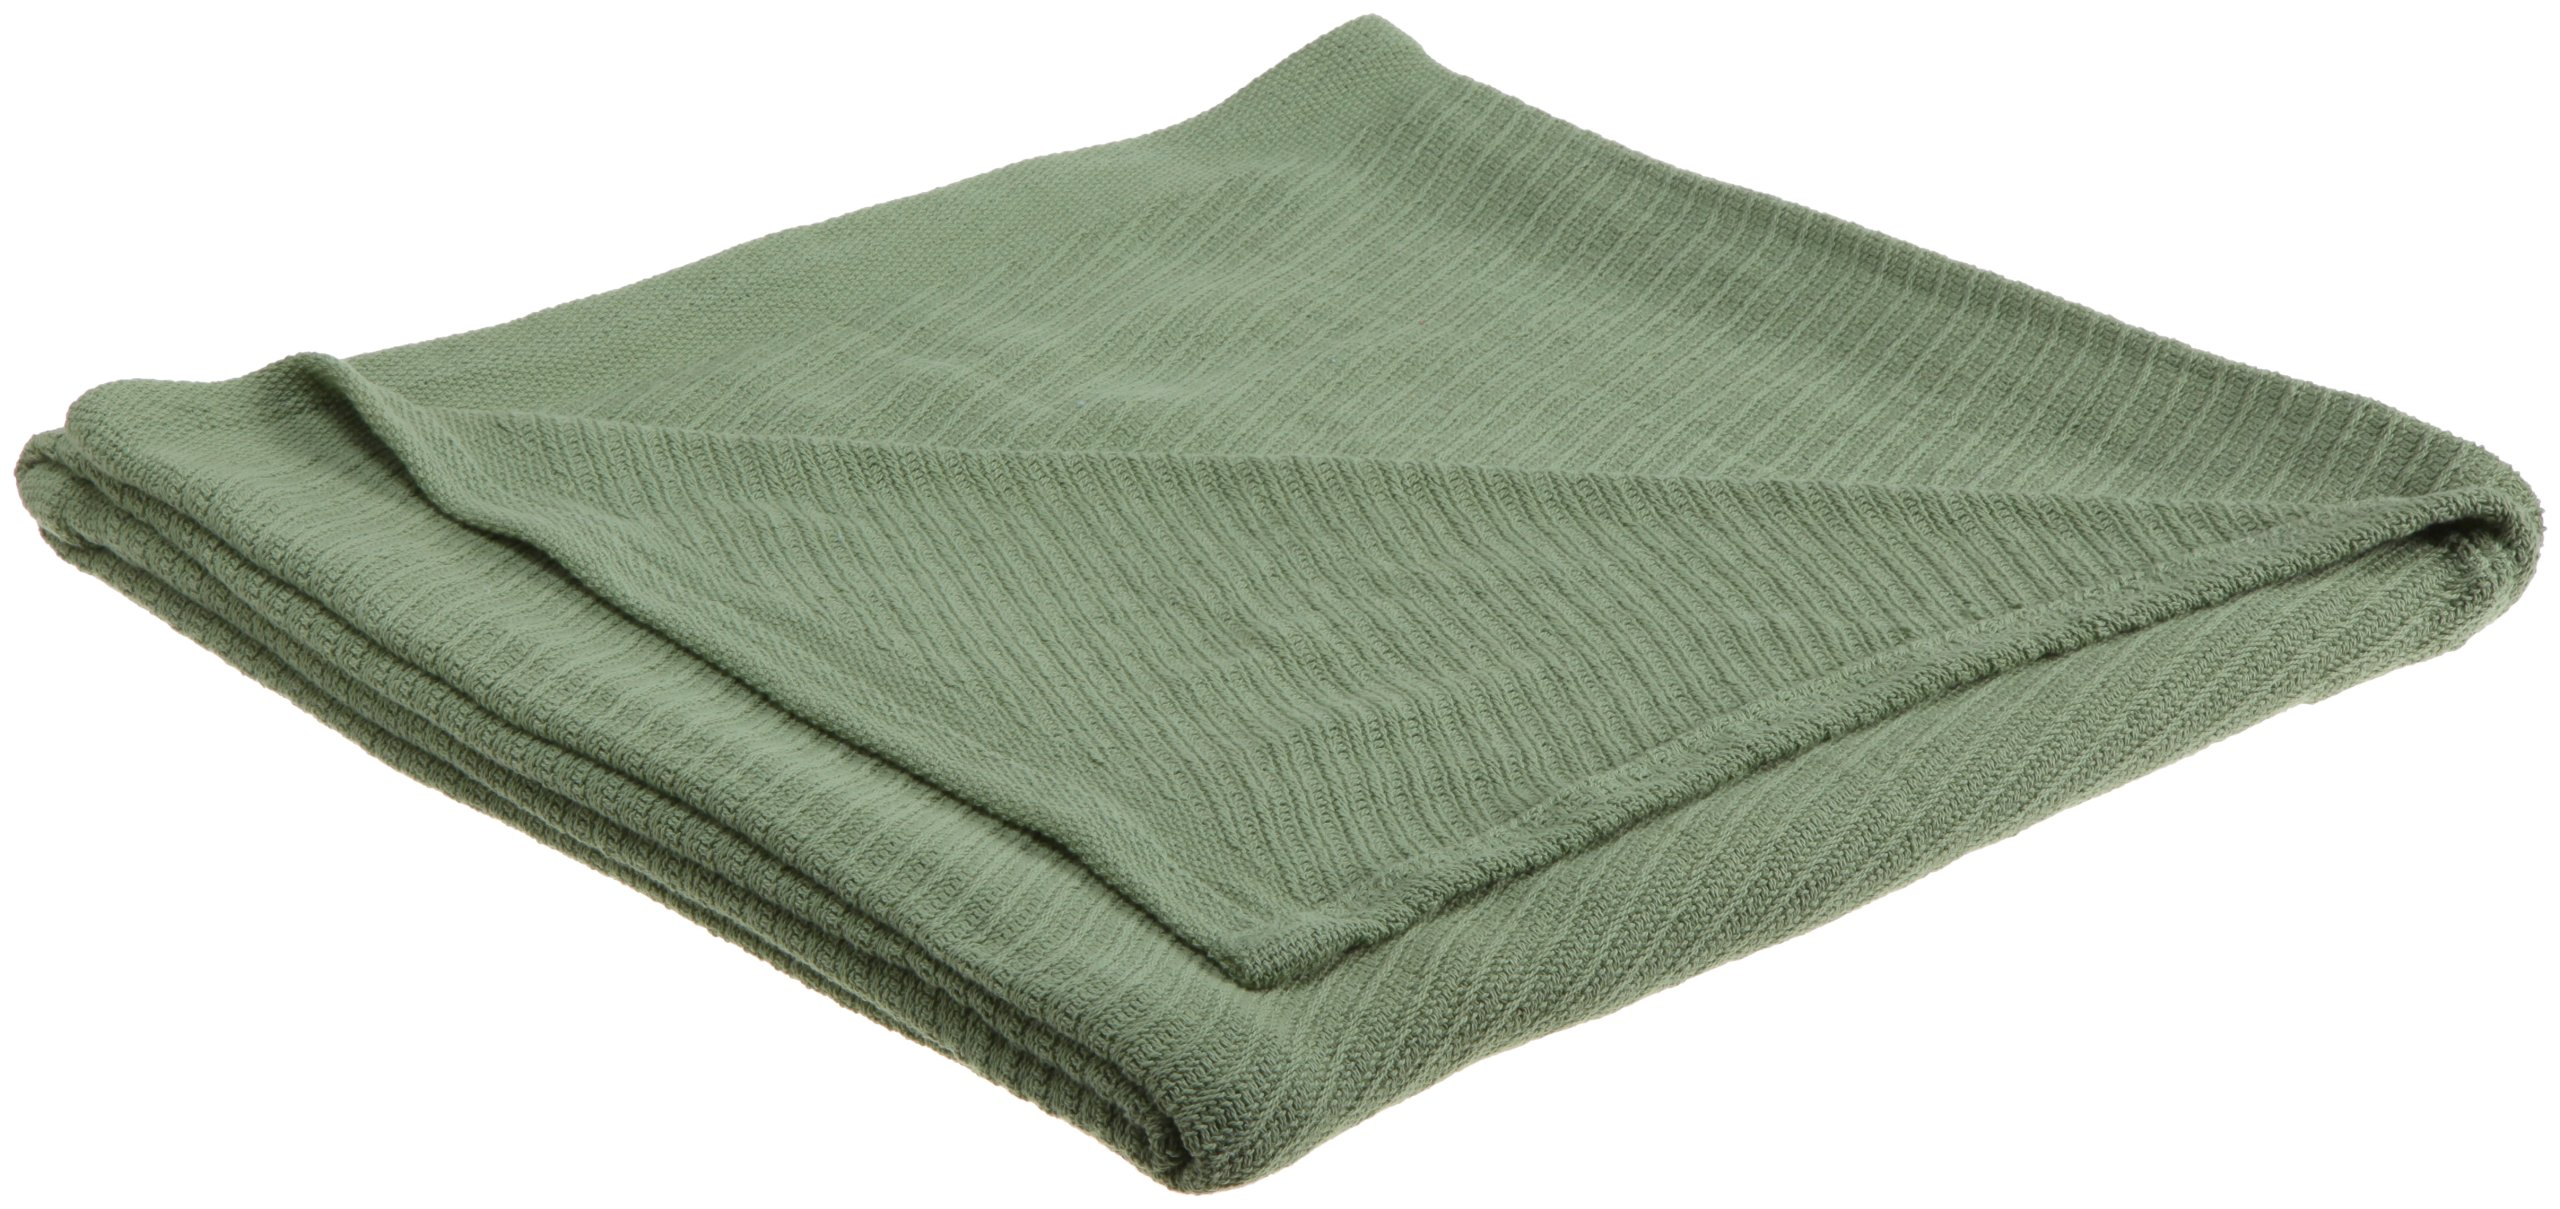 WestPoint Home 100-Percent Cotton Full/Queen Blanket, Sage - Made from 100-percent natural loom woven cotton Naturally soft and breathable Year round comfort - blankets-throws, bedroom-sheets-comforters, bedroom - 81Zw8i4UeTL -